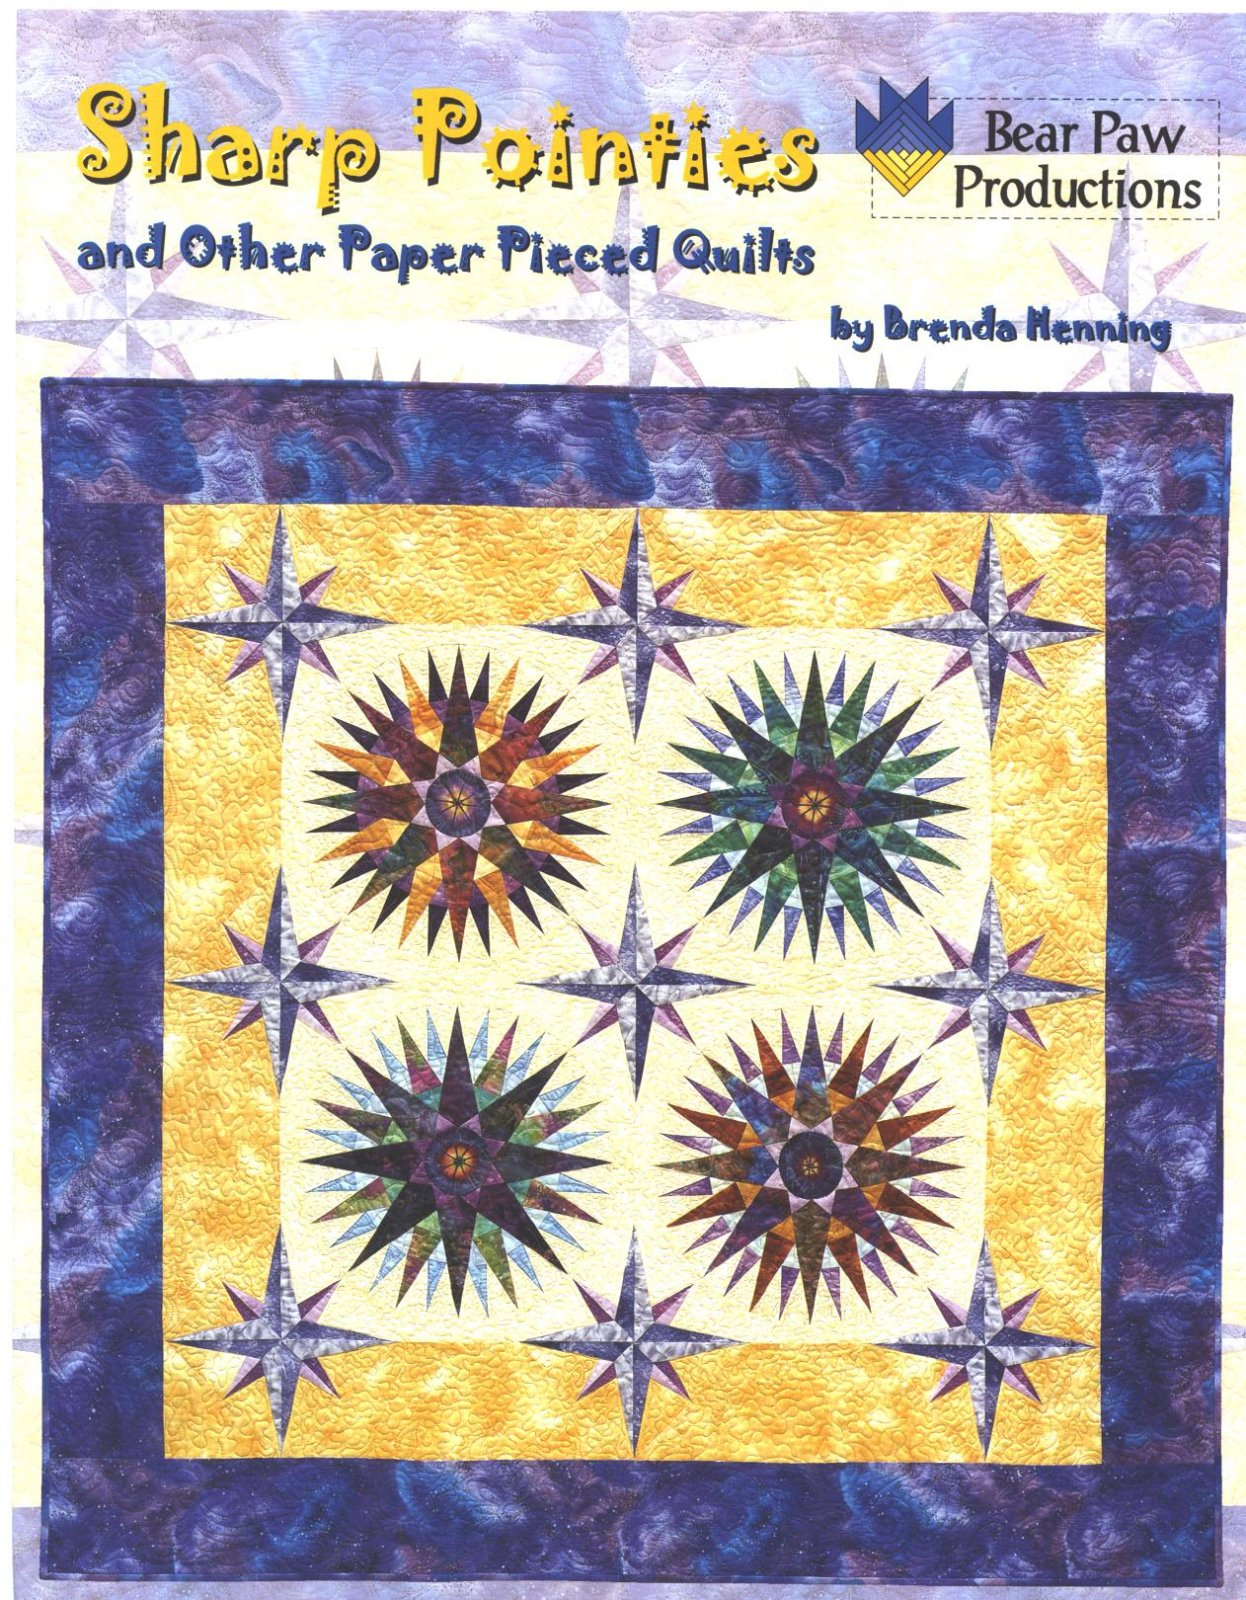 Sharp Pointies and Other Paper Pieced Quilts